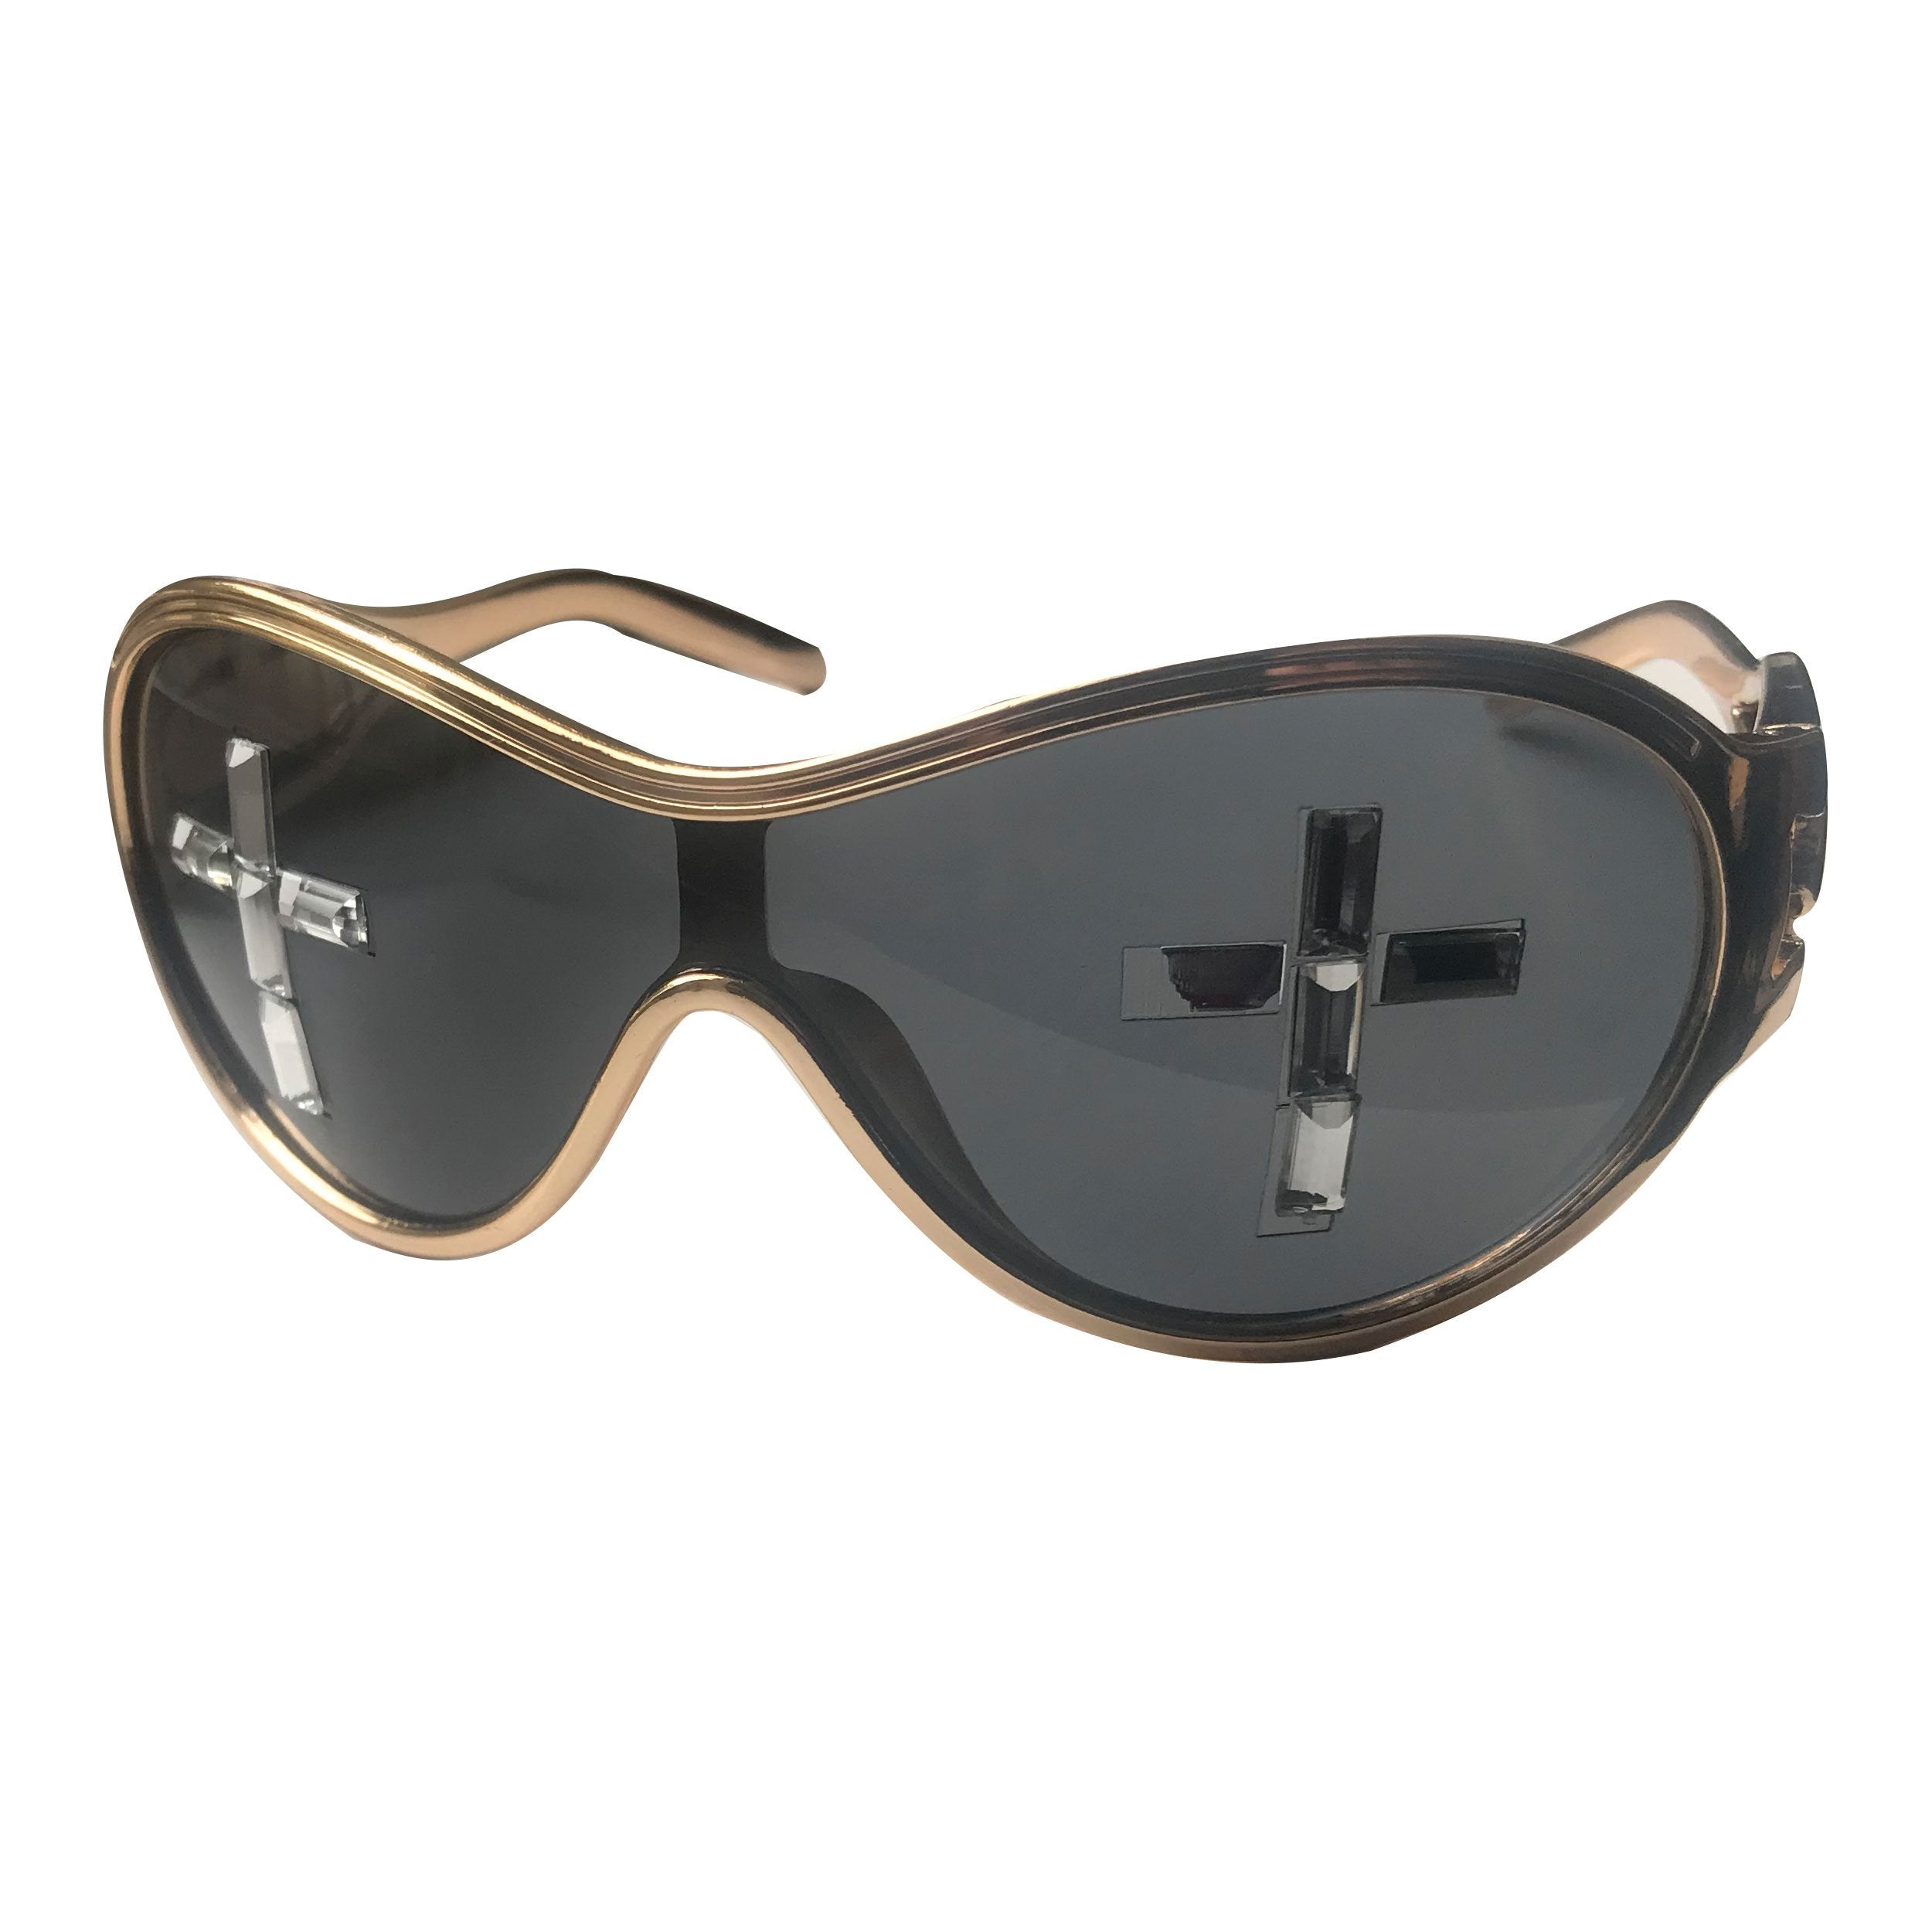 Johnny Impact Sunglasses